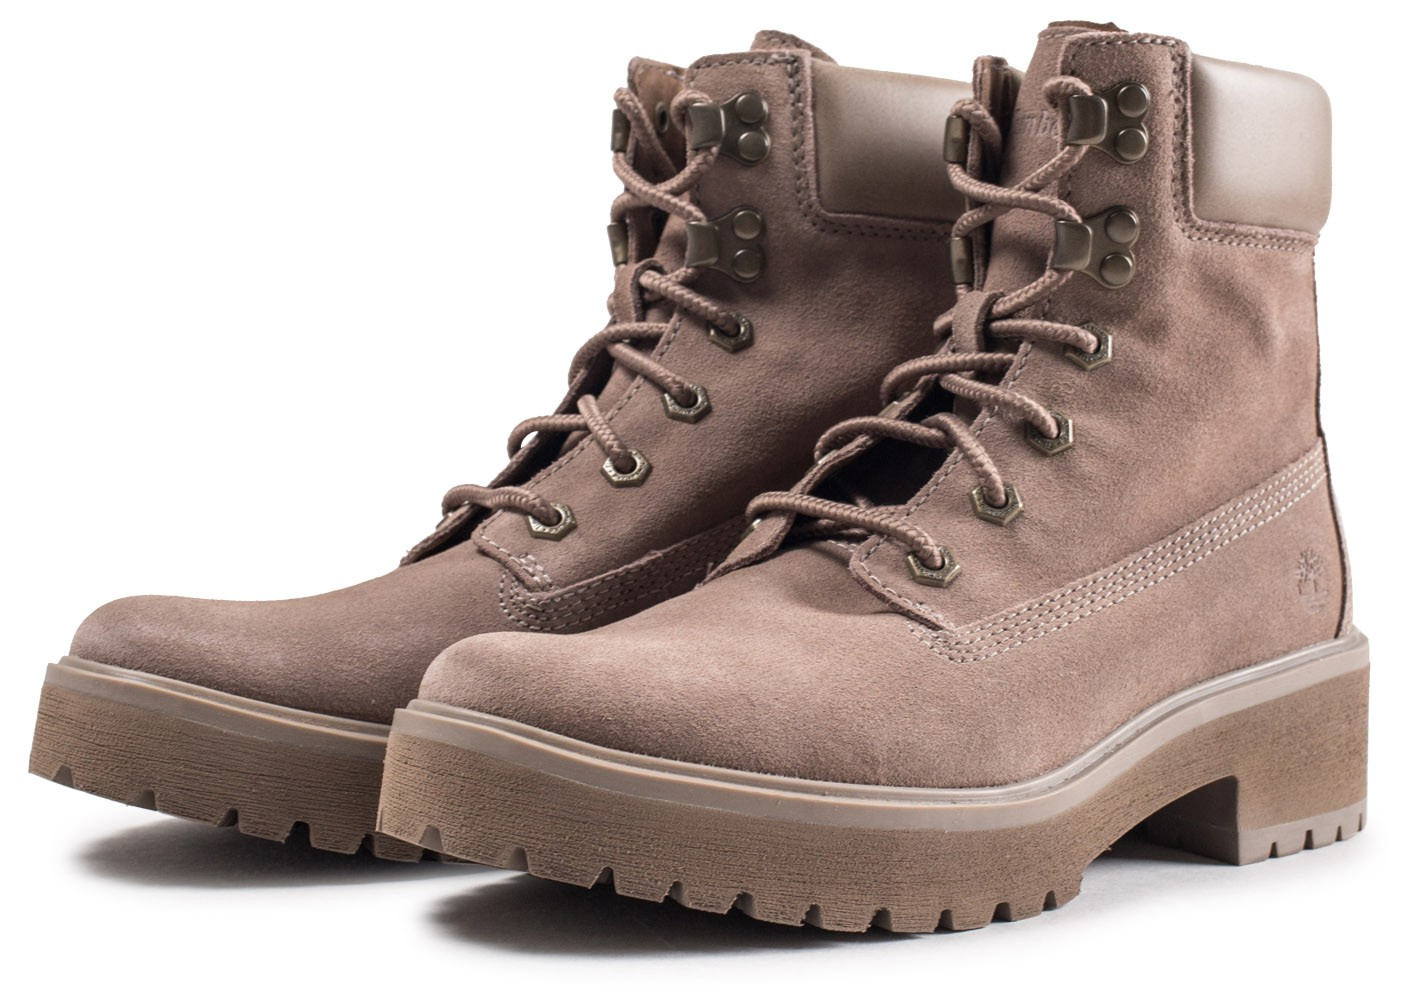 705c4ed475c2 Chaussures Chaussures Carnaby Timberland femme femme femme Baskets grise  femme Cool qTvTfI